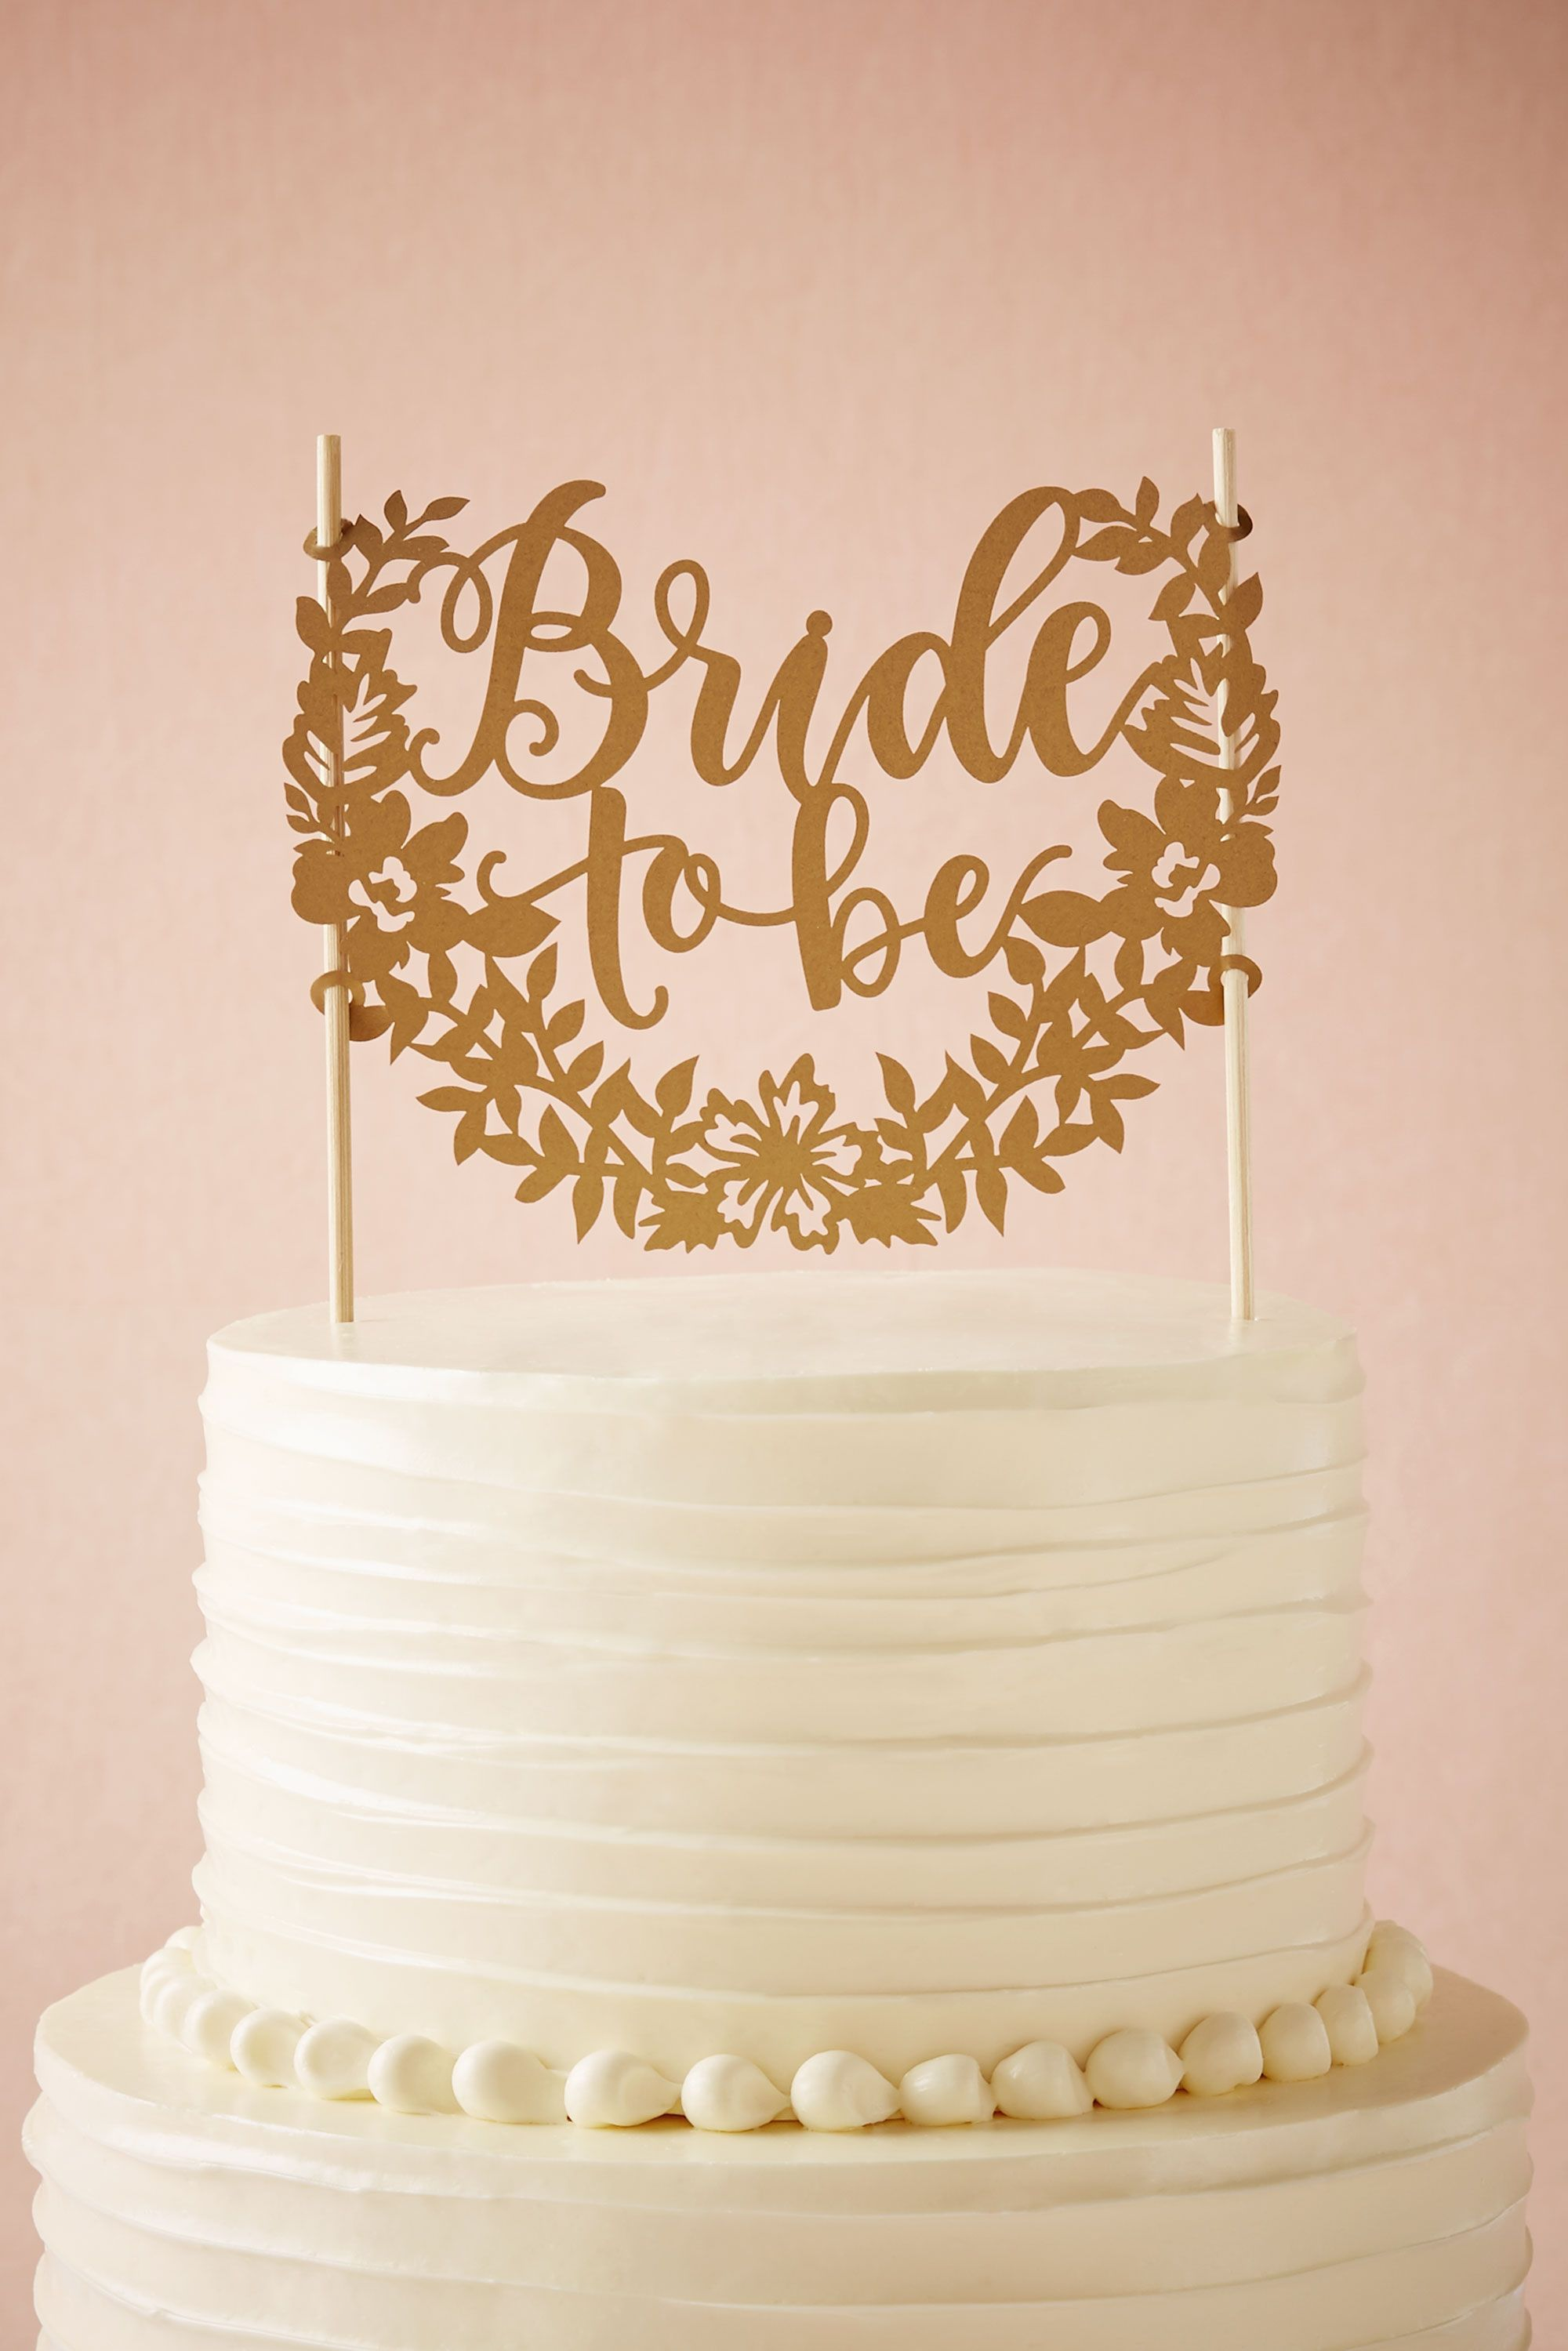 Bride To Be Cake Topper In Sale BHLDN